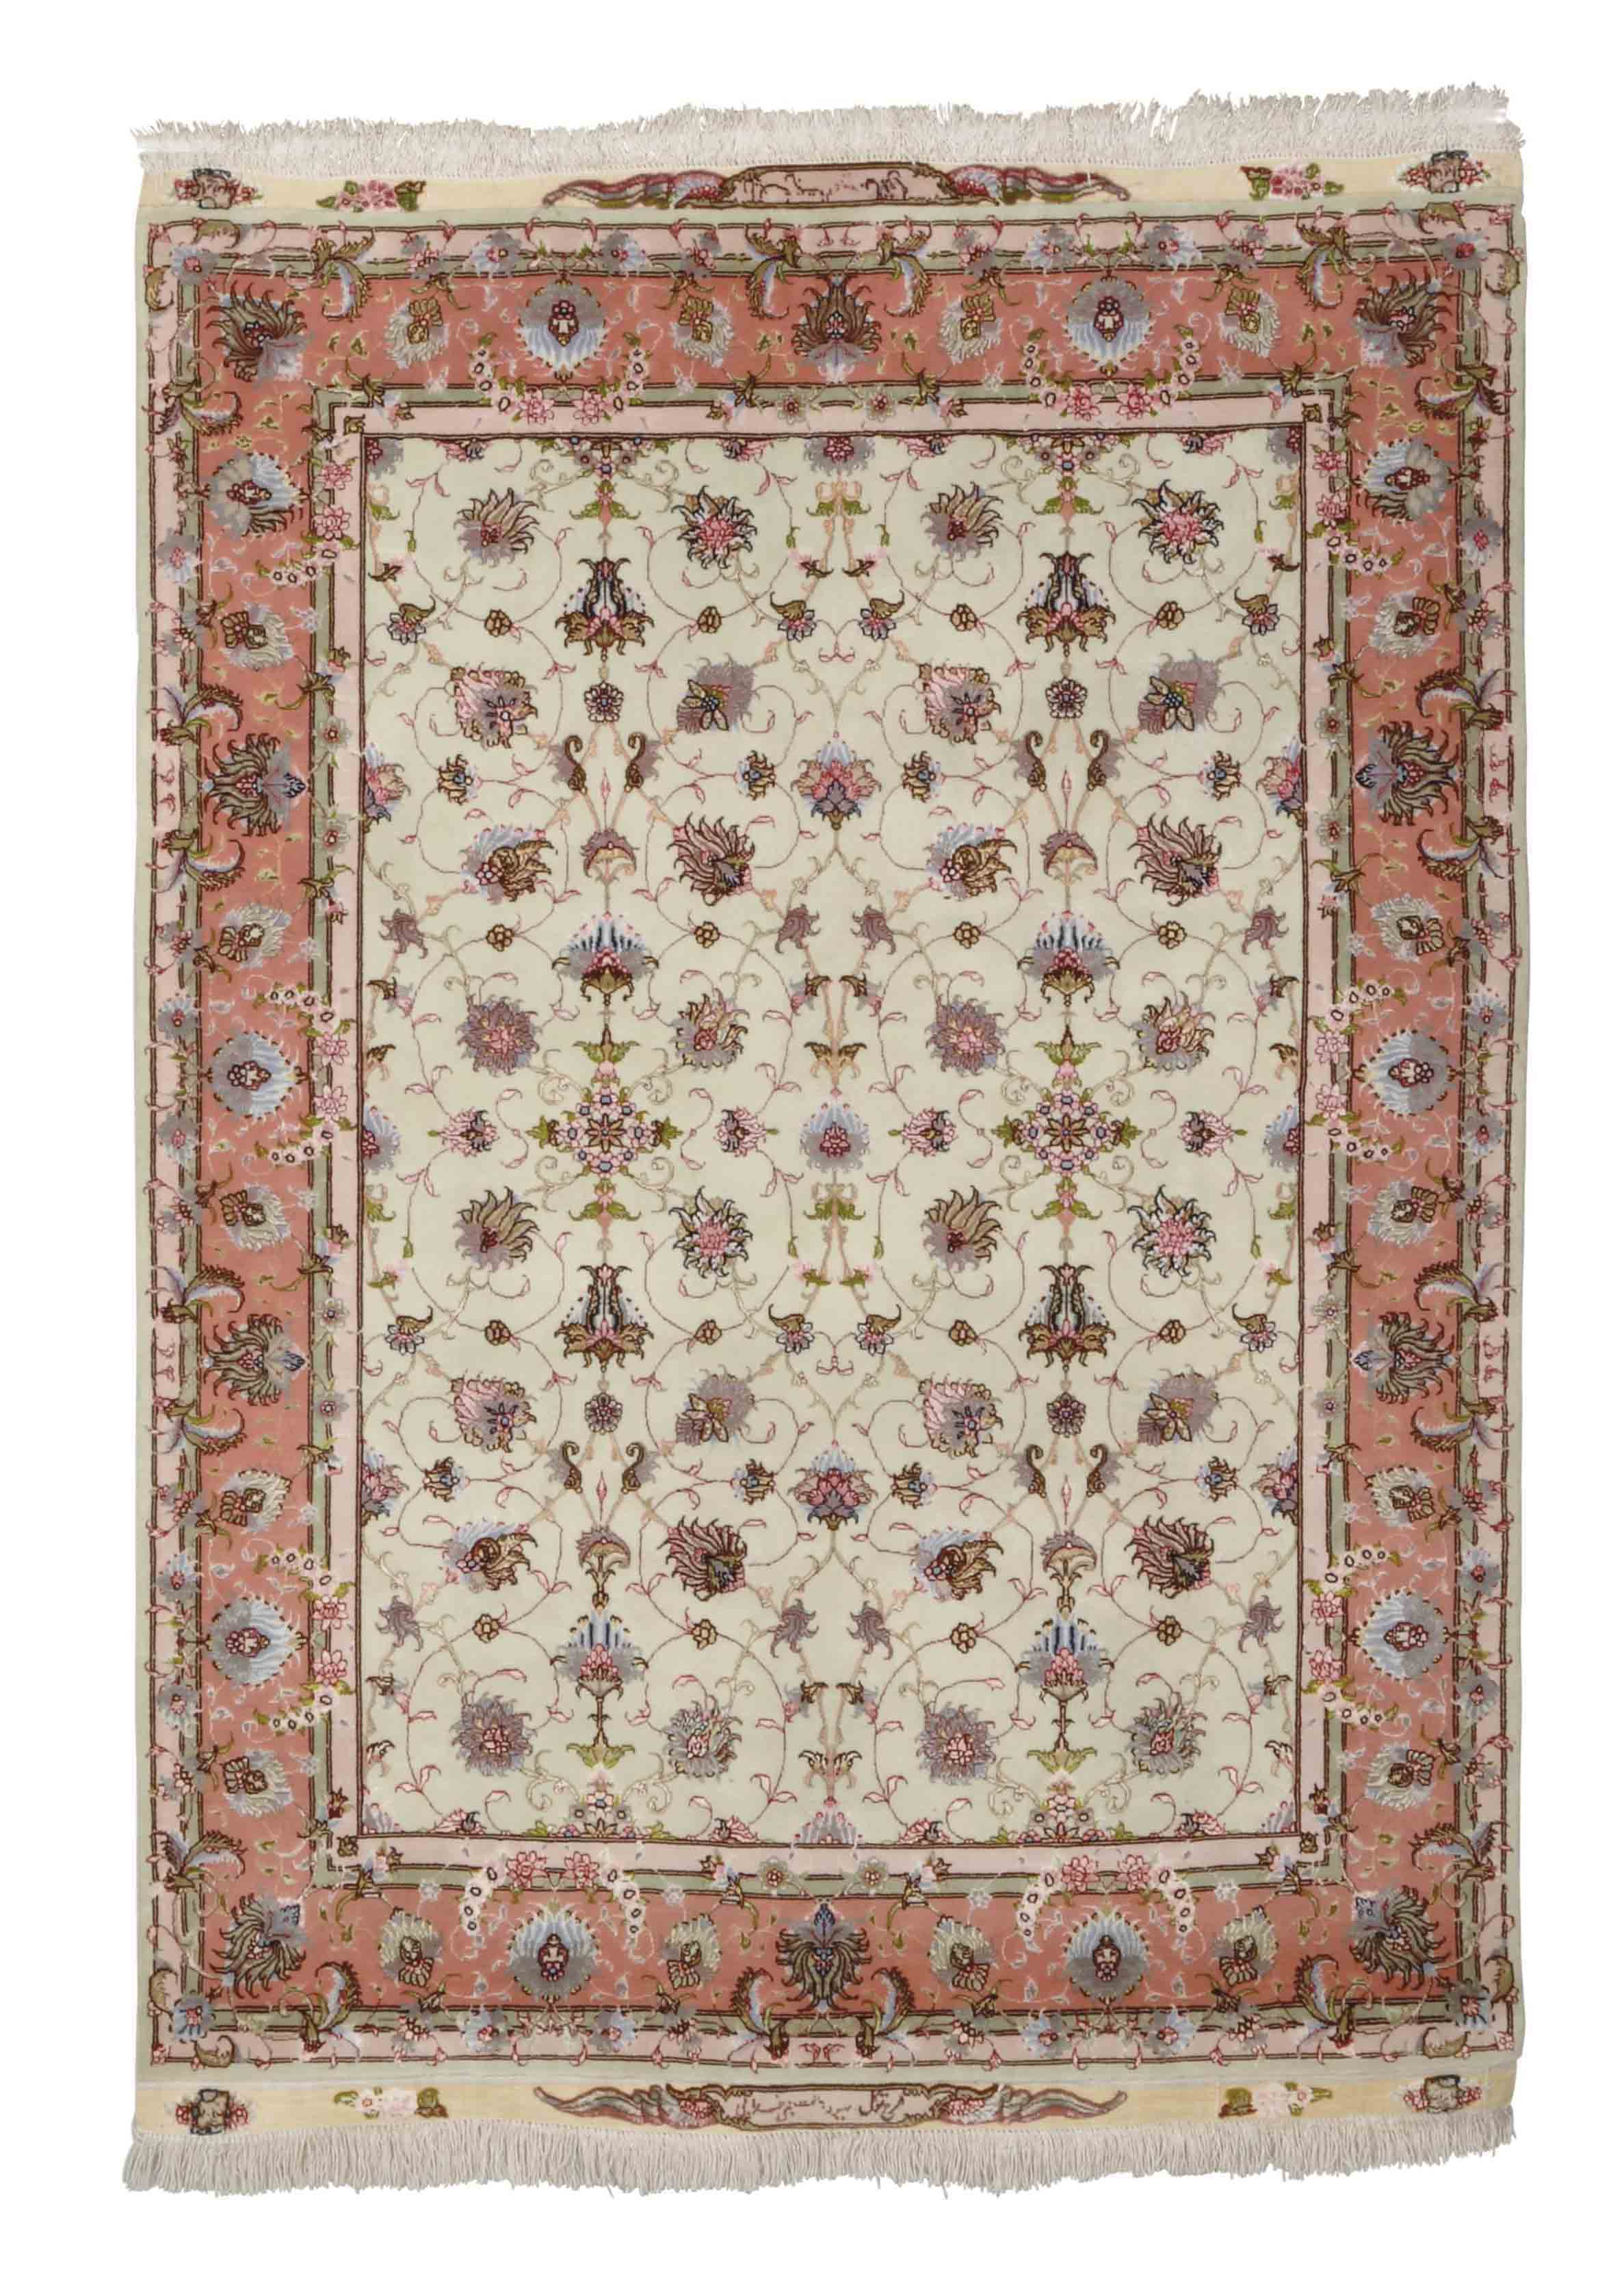 A very fine part silk Tabriz r